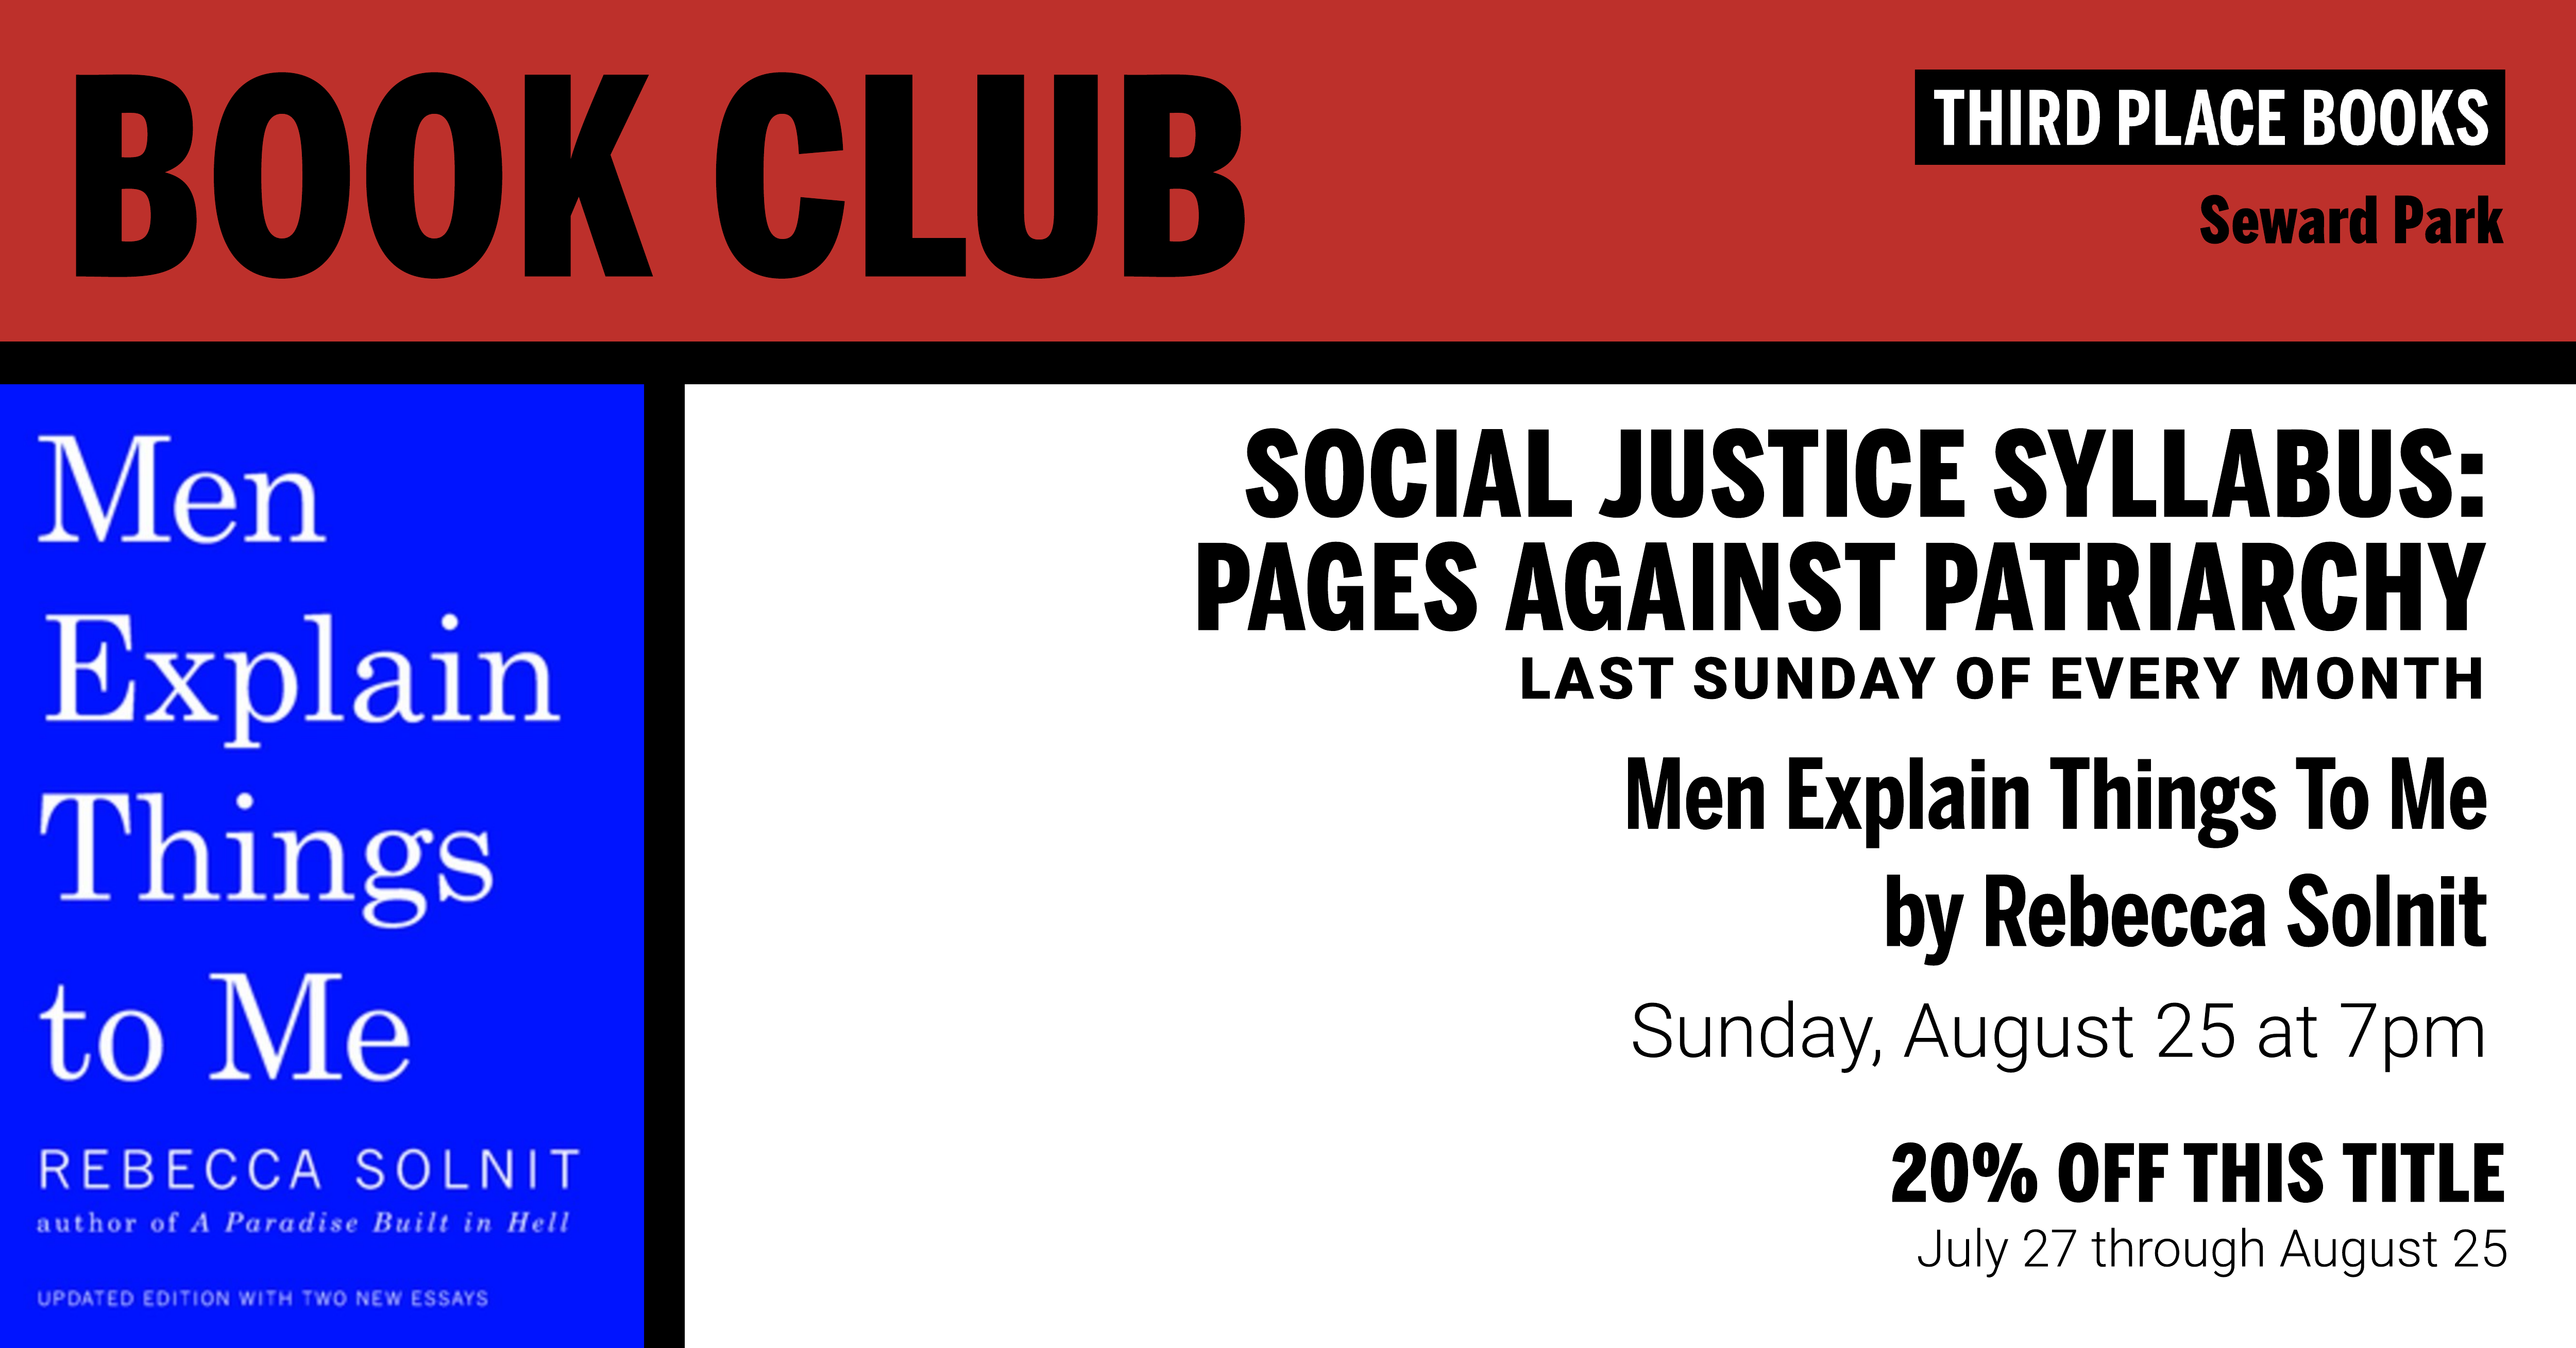 Social Justice Syllabus Book Club discussing Men Explain Things to Me by Rebecca Solnit on Sunday, August 25 at 7pm